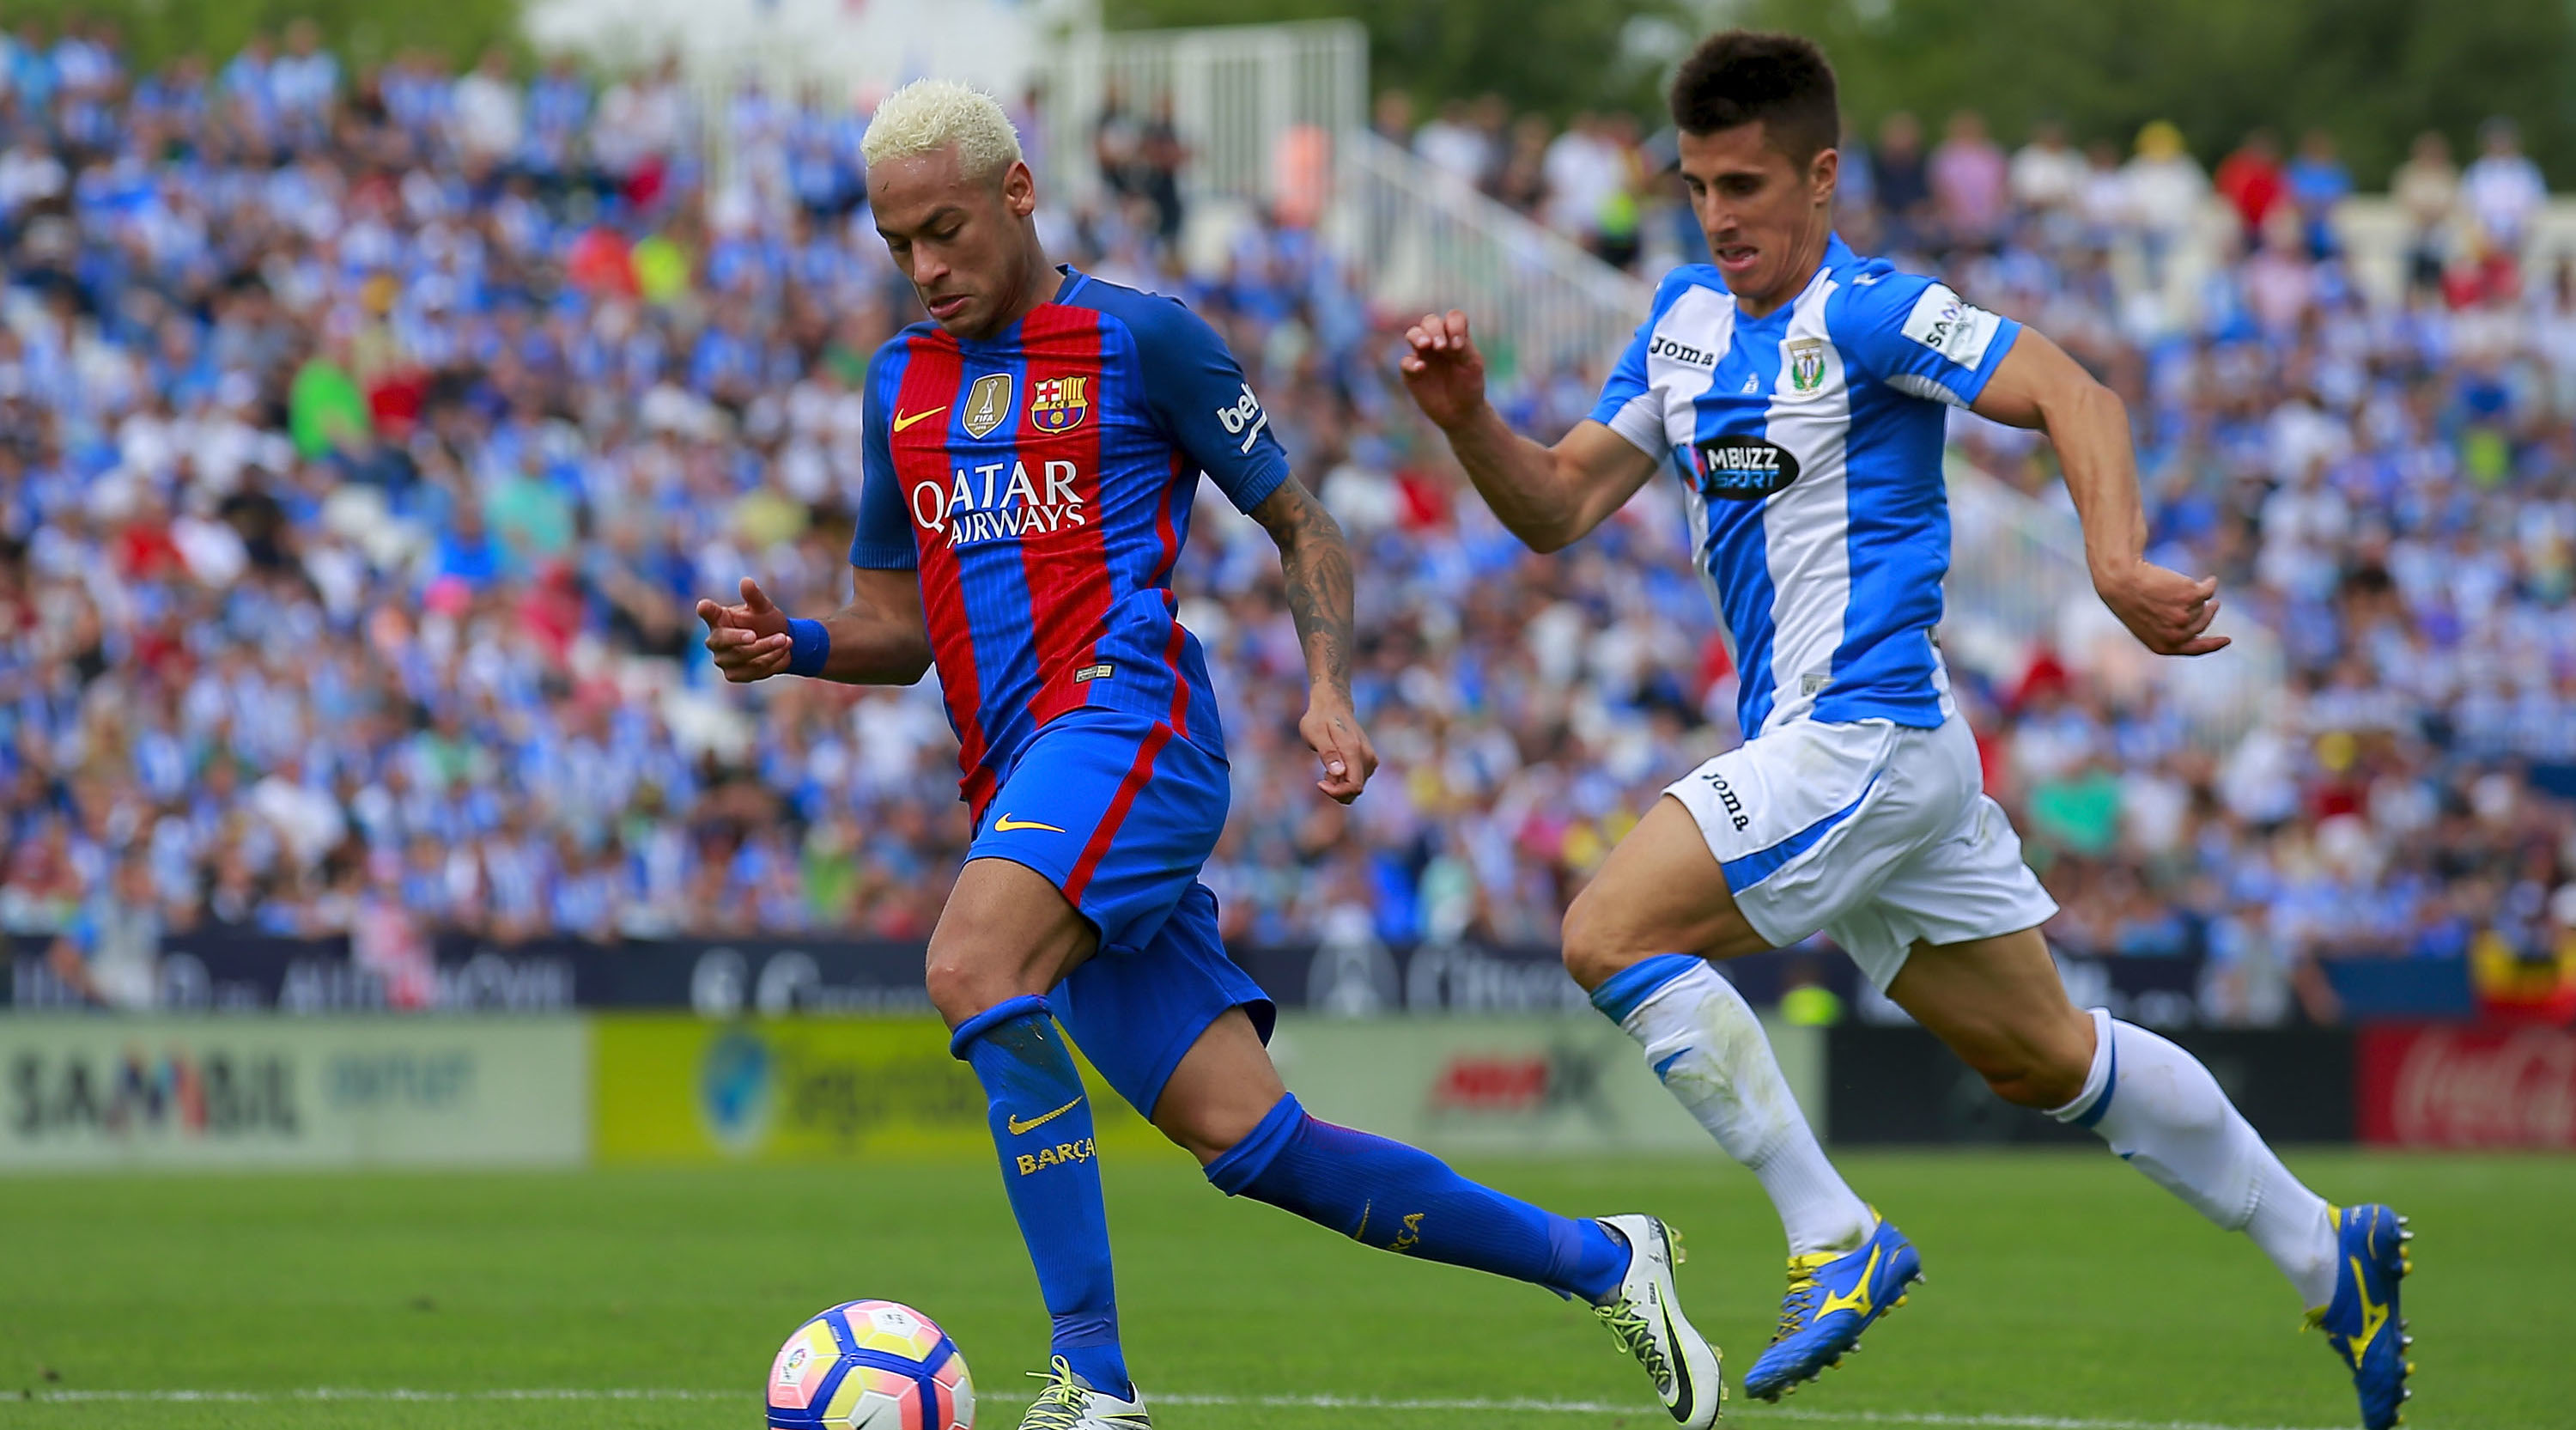 LEGANES, SPAIN - SEPTEMBER 17: Neymar JR. (L) of FC Barcelona competes for the ball with Unai Bustinza (R) of Deportivo Leganes during the La Liga match between Deportivo Leganes and FC Barcelona at Estadio Municipal de Butarque on September 17, 2016 in Leganes, Spain. (Photo by Gonzalo Arroyo Moreno/Getty Images)